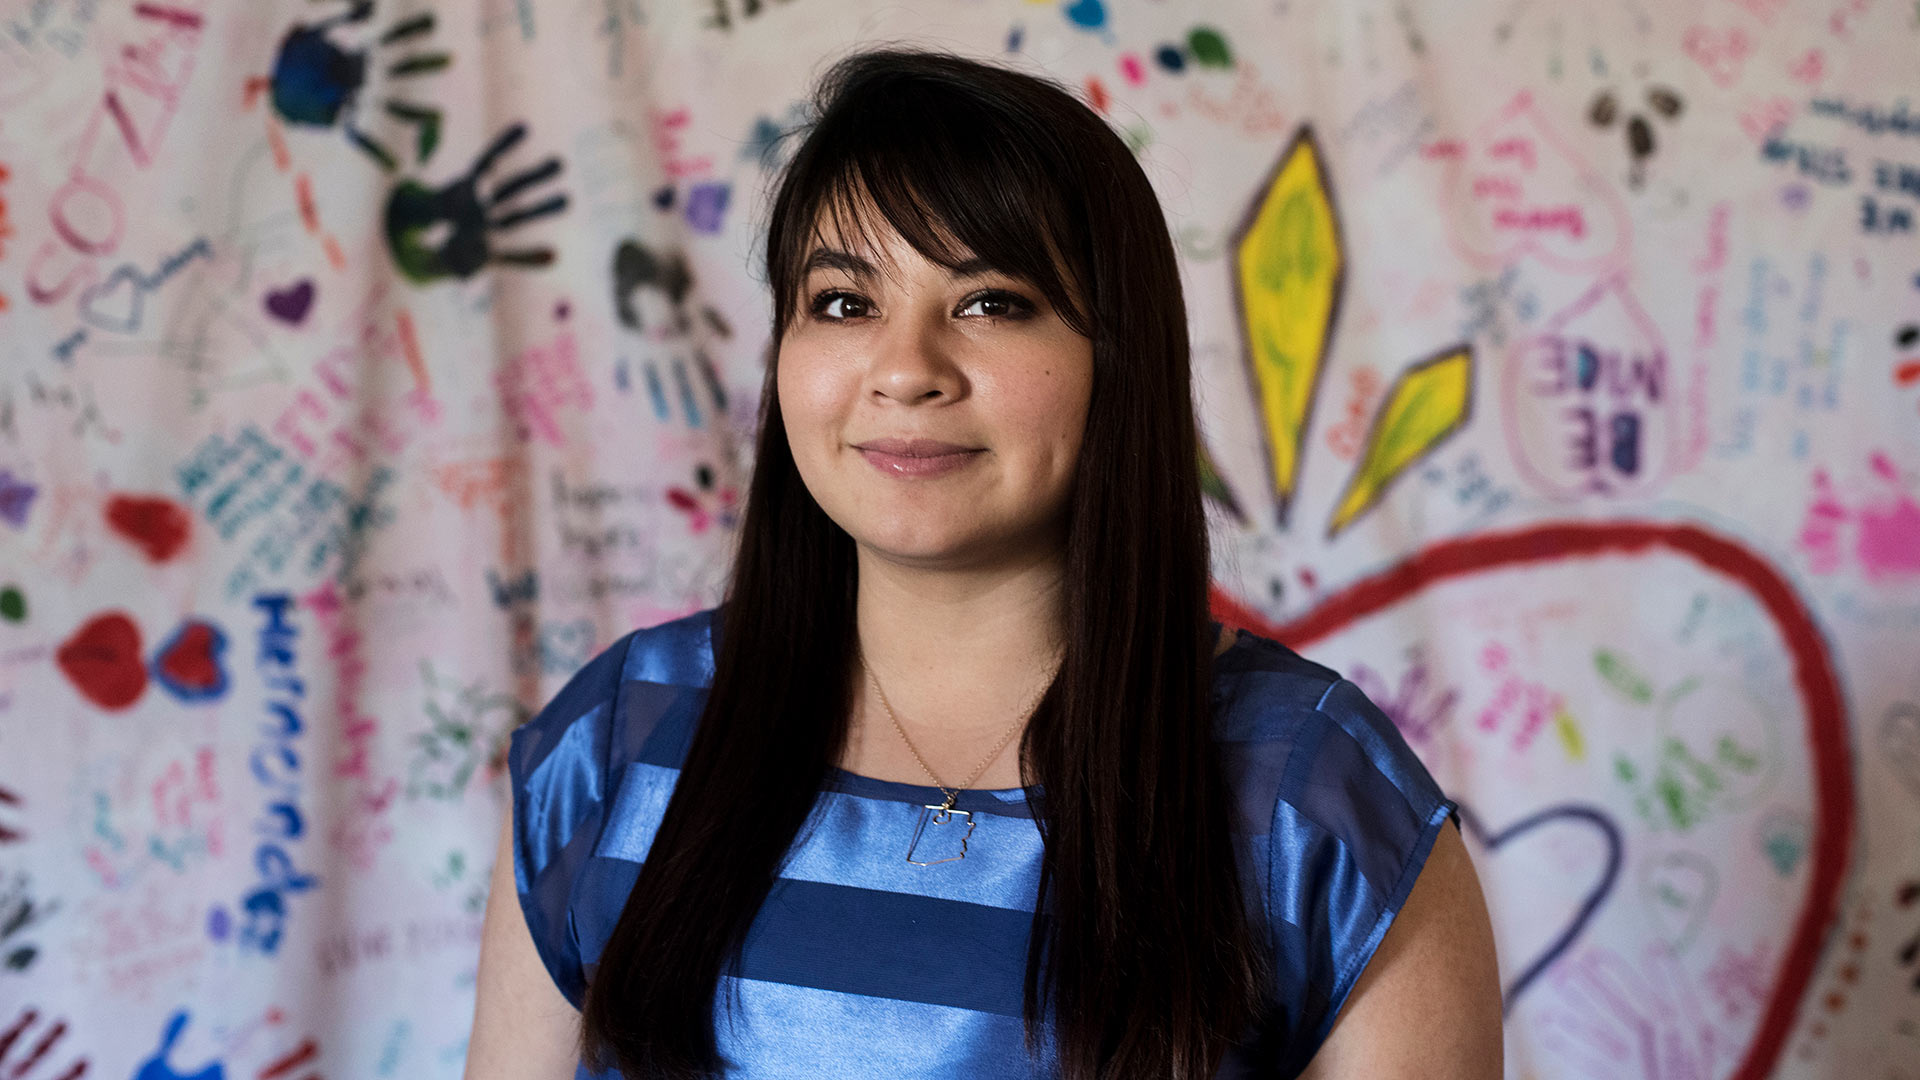 Reyna Montoya is a DACA recipient and the CEO and founder of Aliento, a nonprofit that helps mixed immigration status families work through trauma.